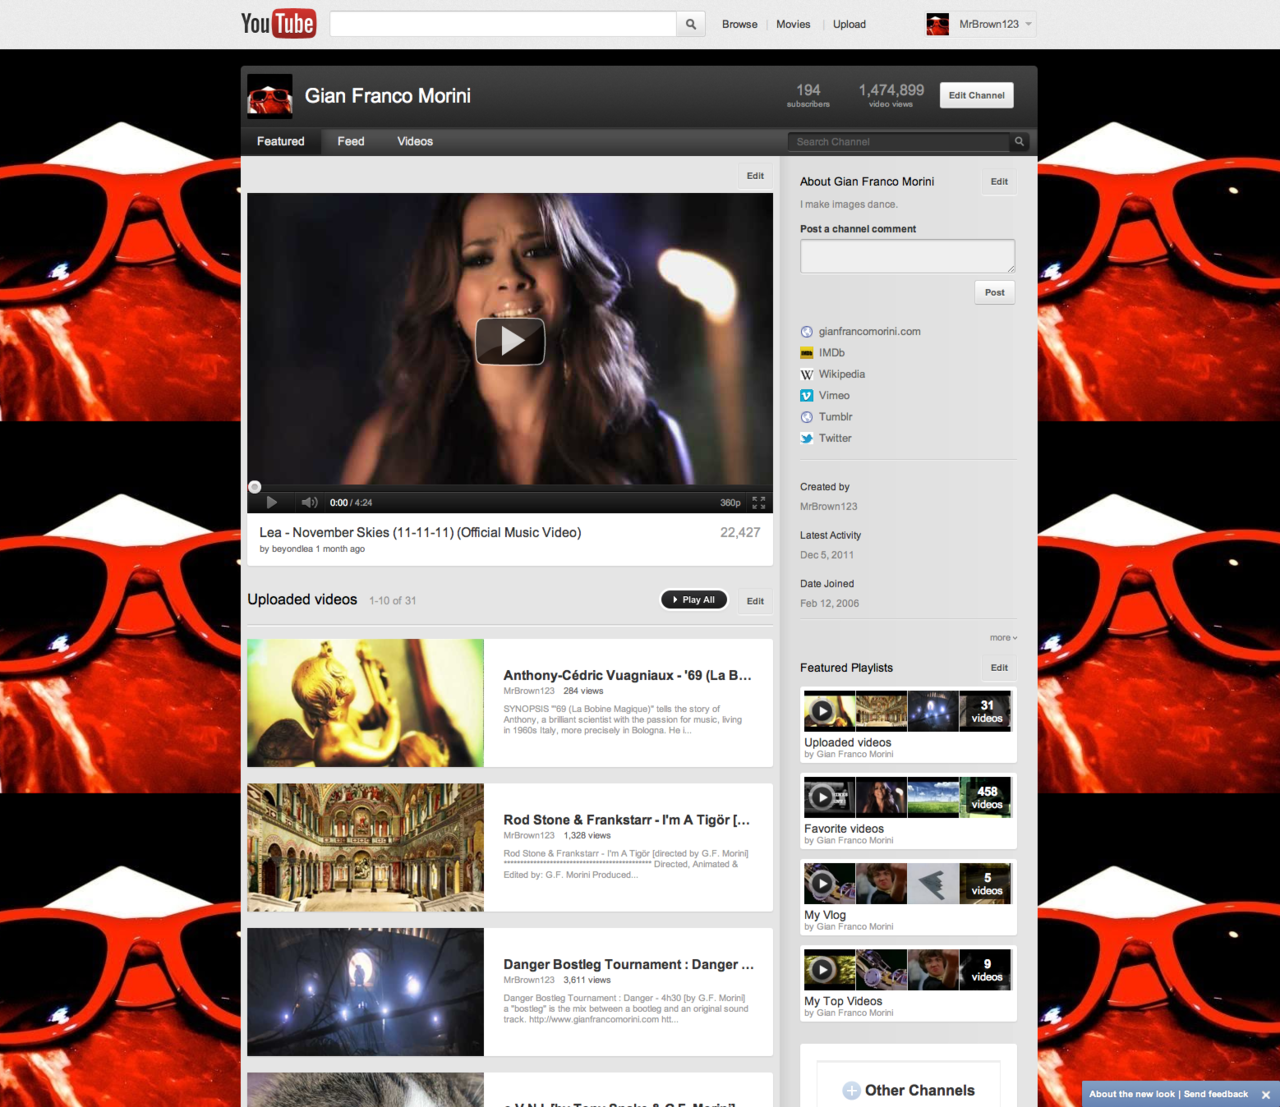 Check out the re-designed and updated YouTube Channel: http://www.youtube.com/user/MrBrown123?feature=mhee